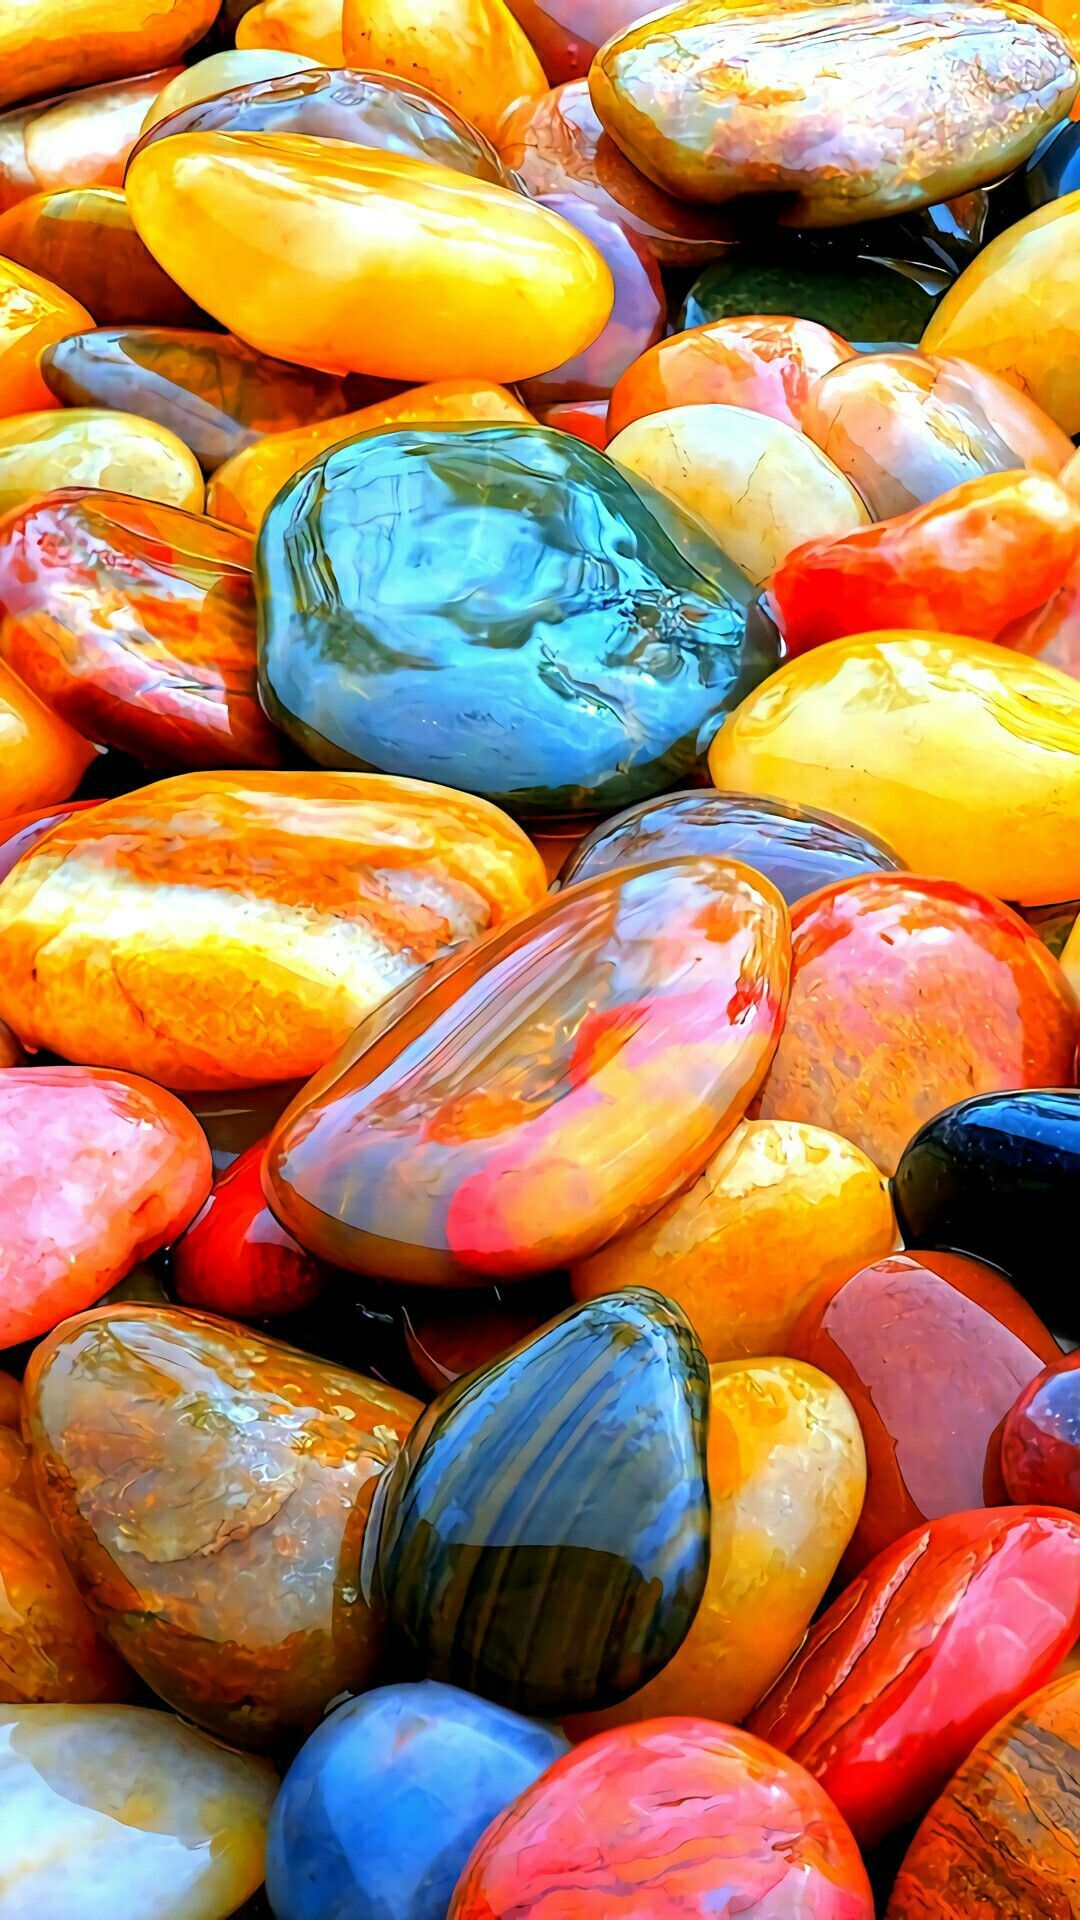 Nature Stone wallpaper Colorful wallpaper Nature wallpaper